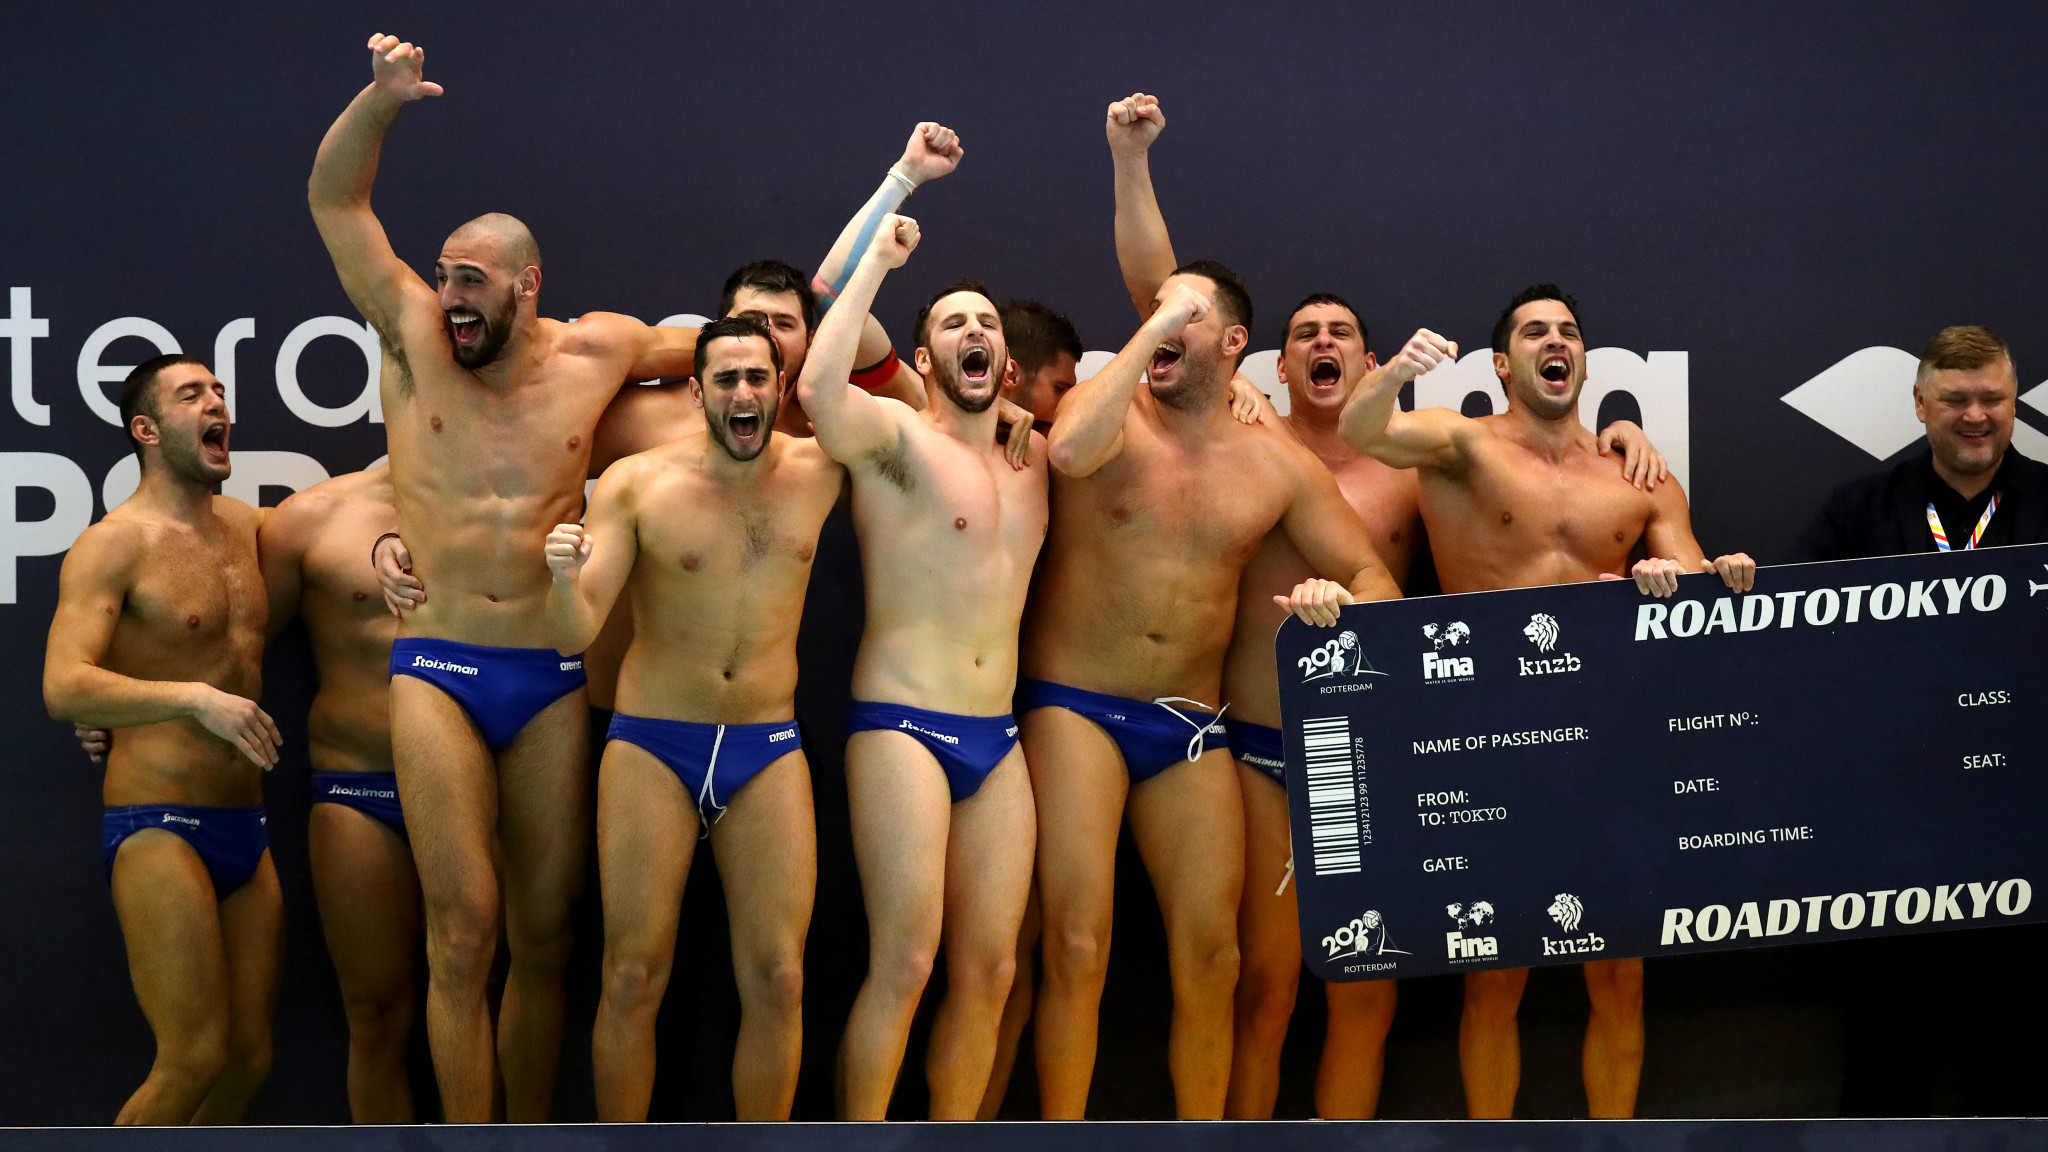 Montenegro and Greece reach Tokyo 2020 after making final of men's Olympic water polo qualification tournament